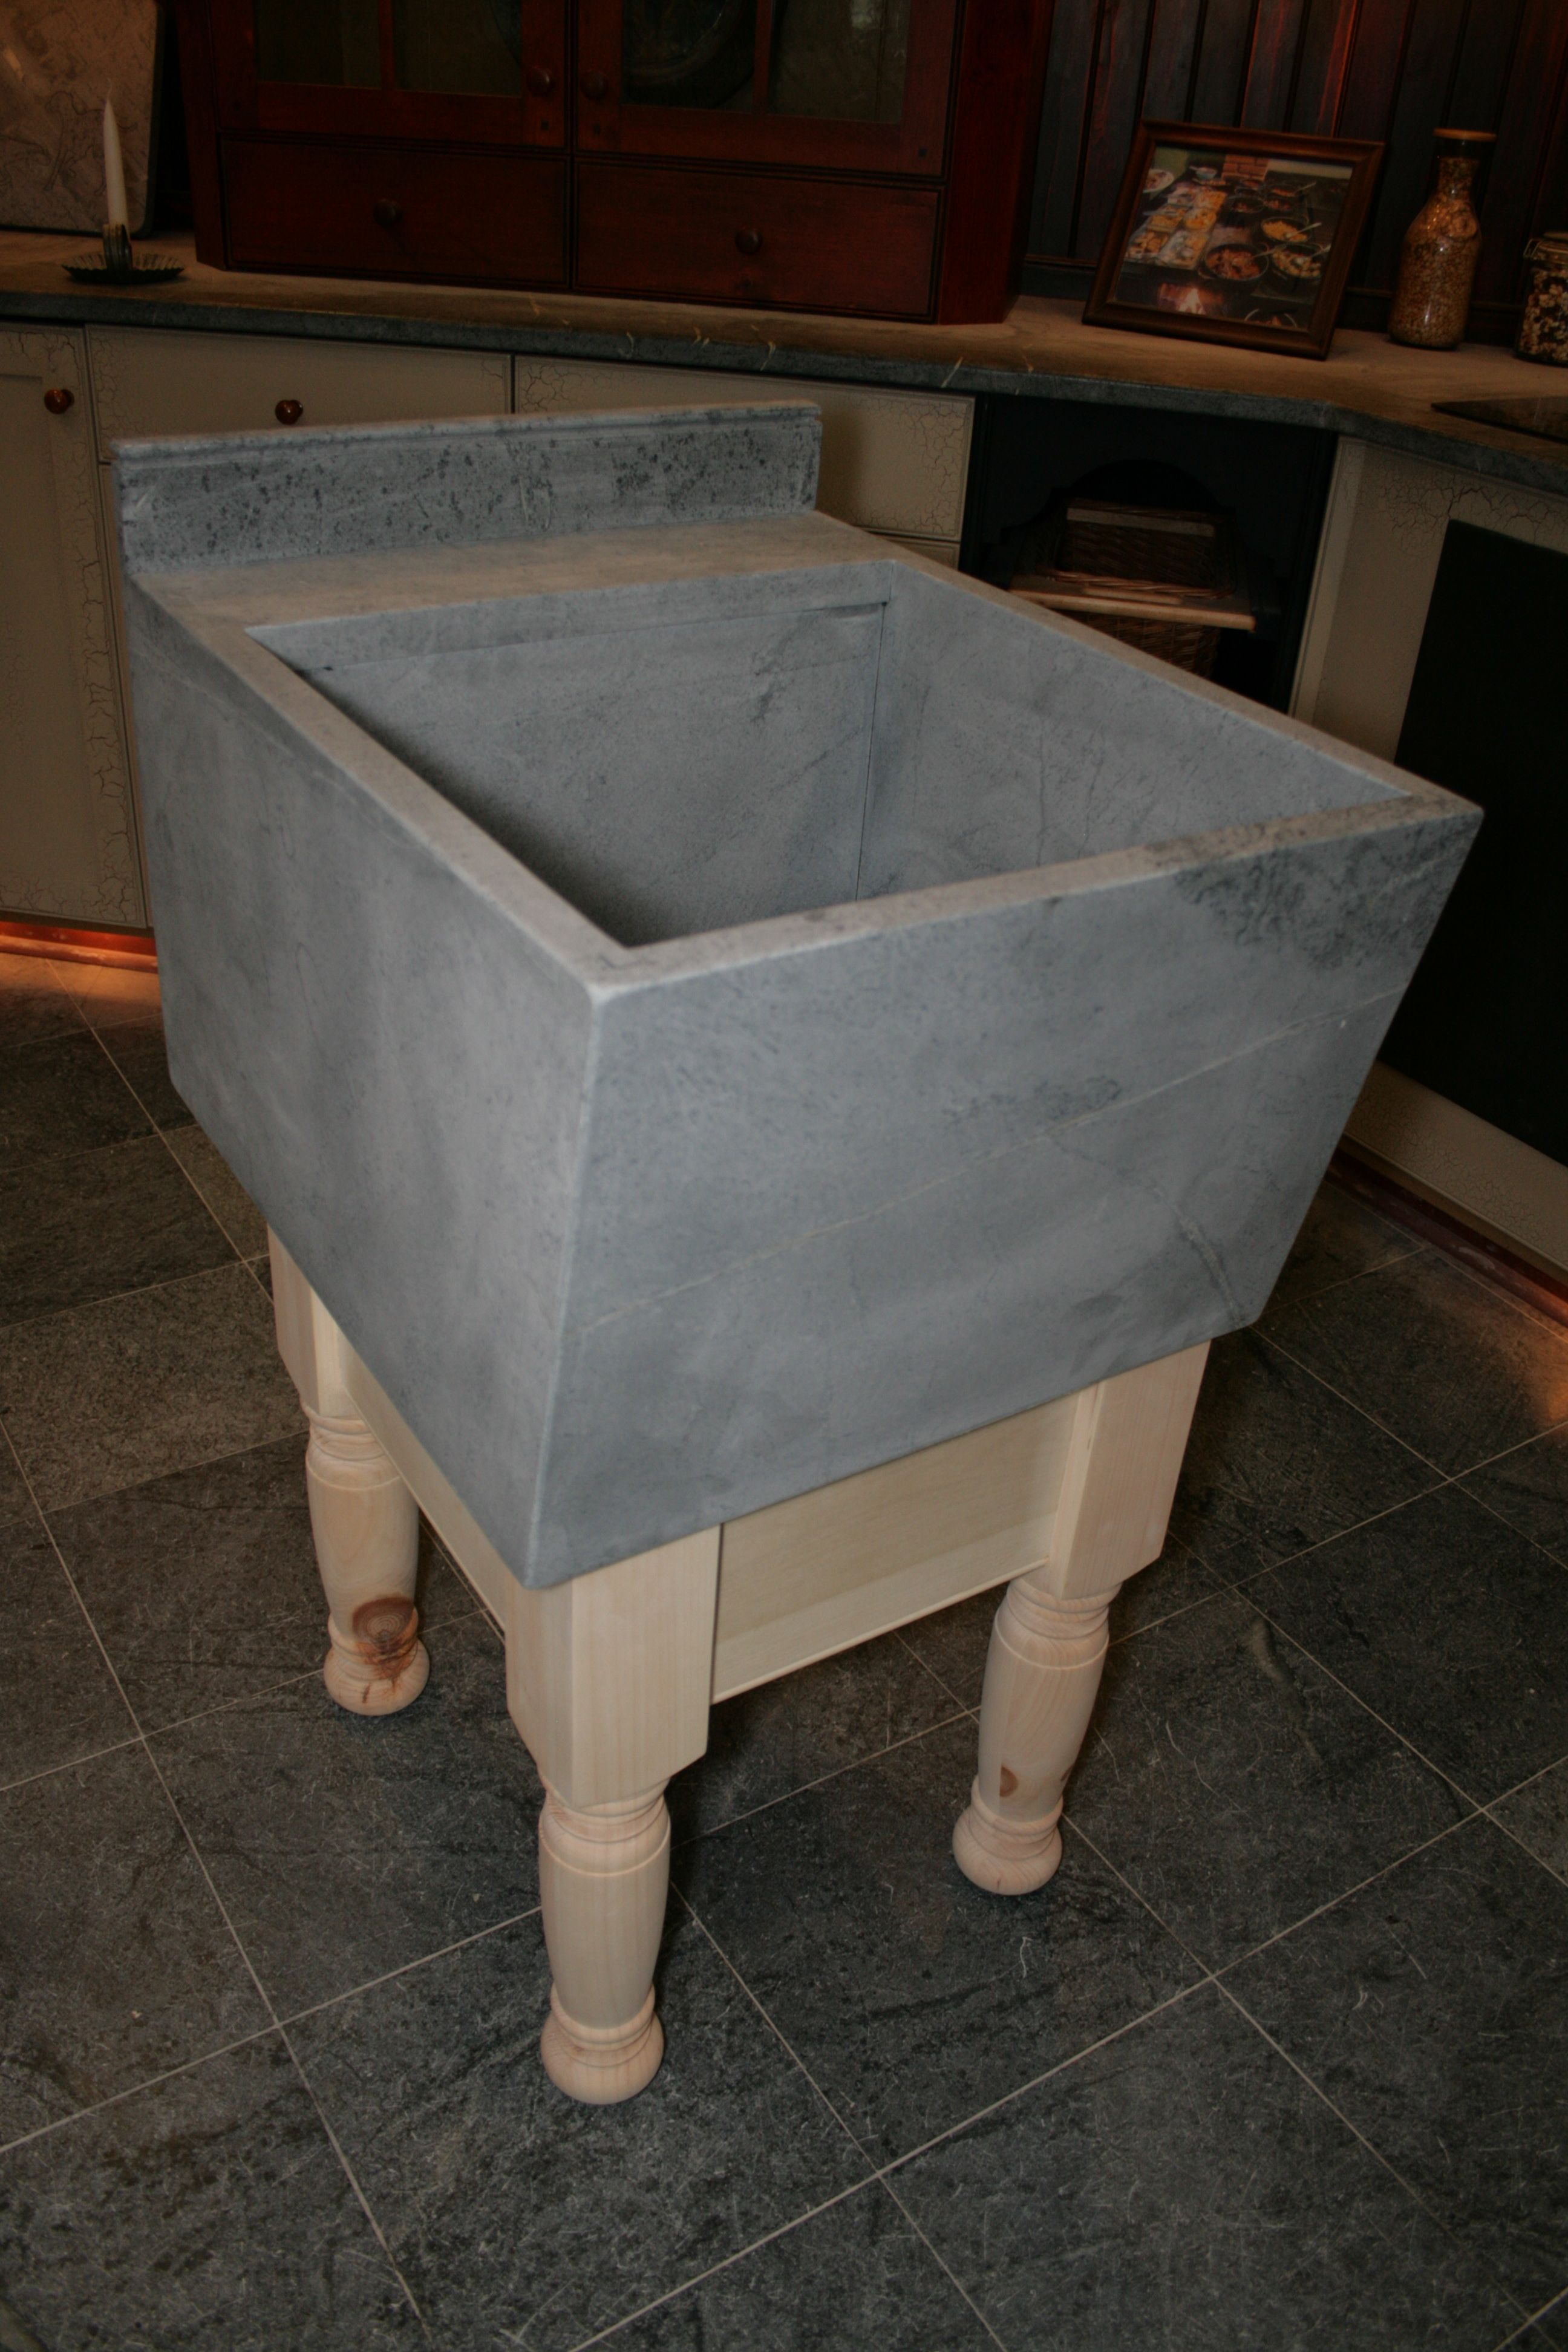 Charmant Laundry Sink, Soap Stone. Can Do With Industrial Legs Instead Or Cabs Below.